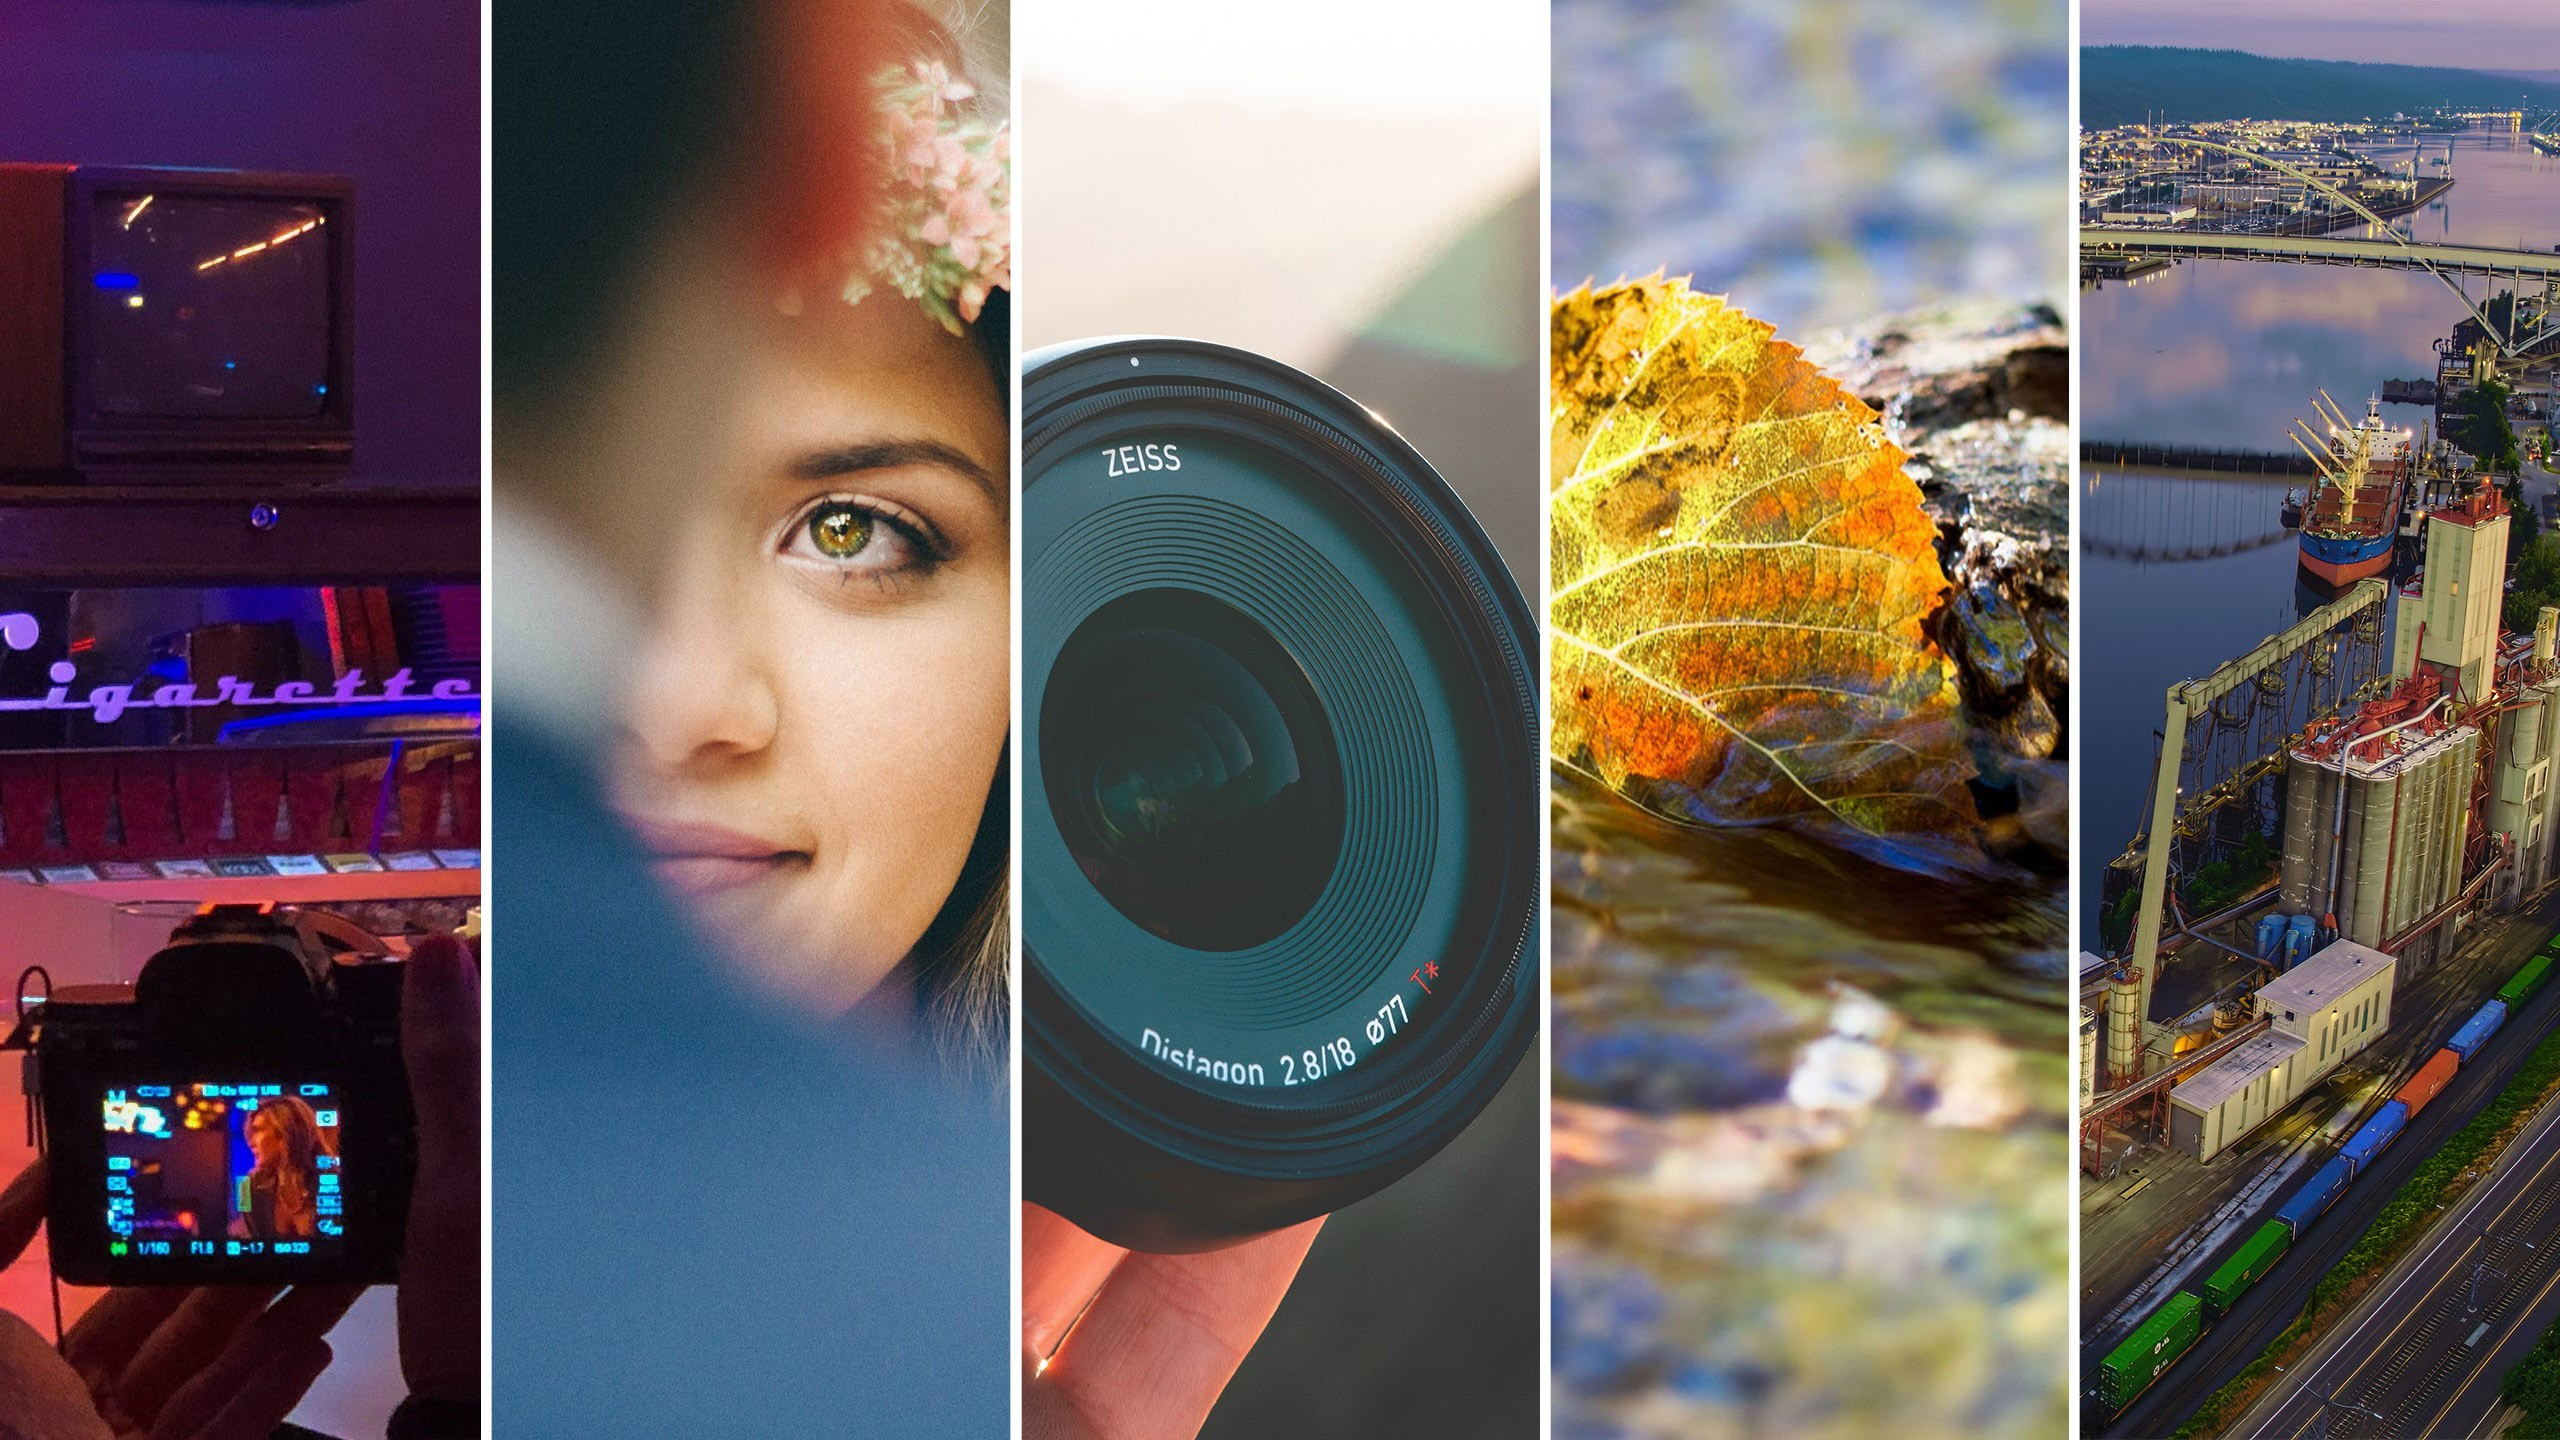 Weekly Wrap-Up of articles on Photofocus for the week of October 27, 2019